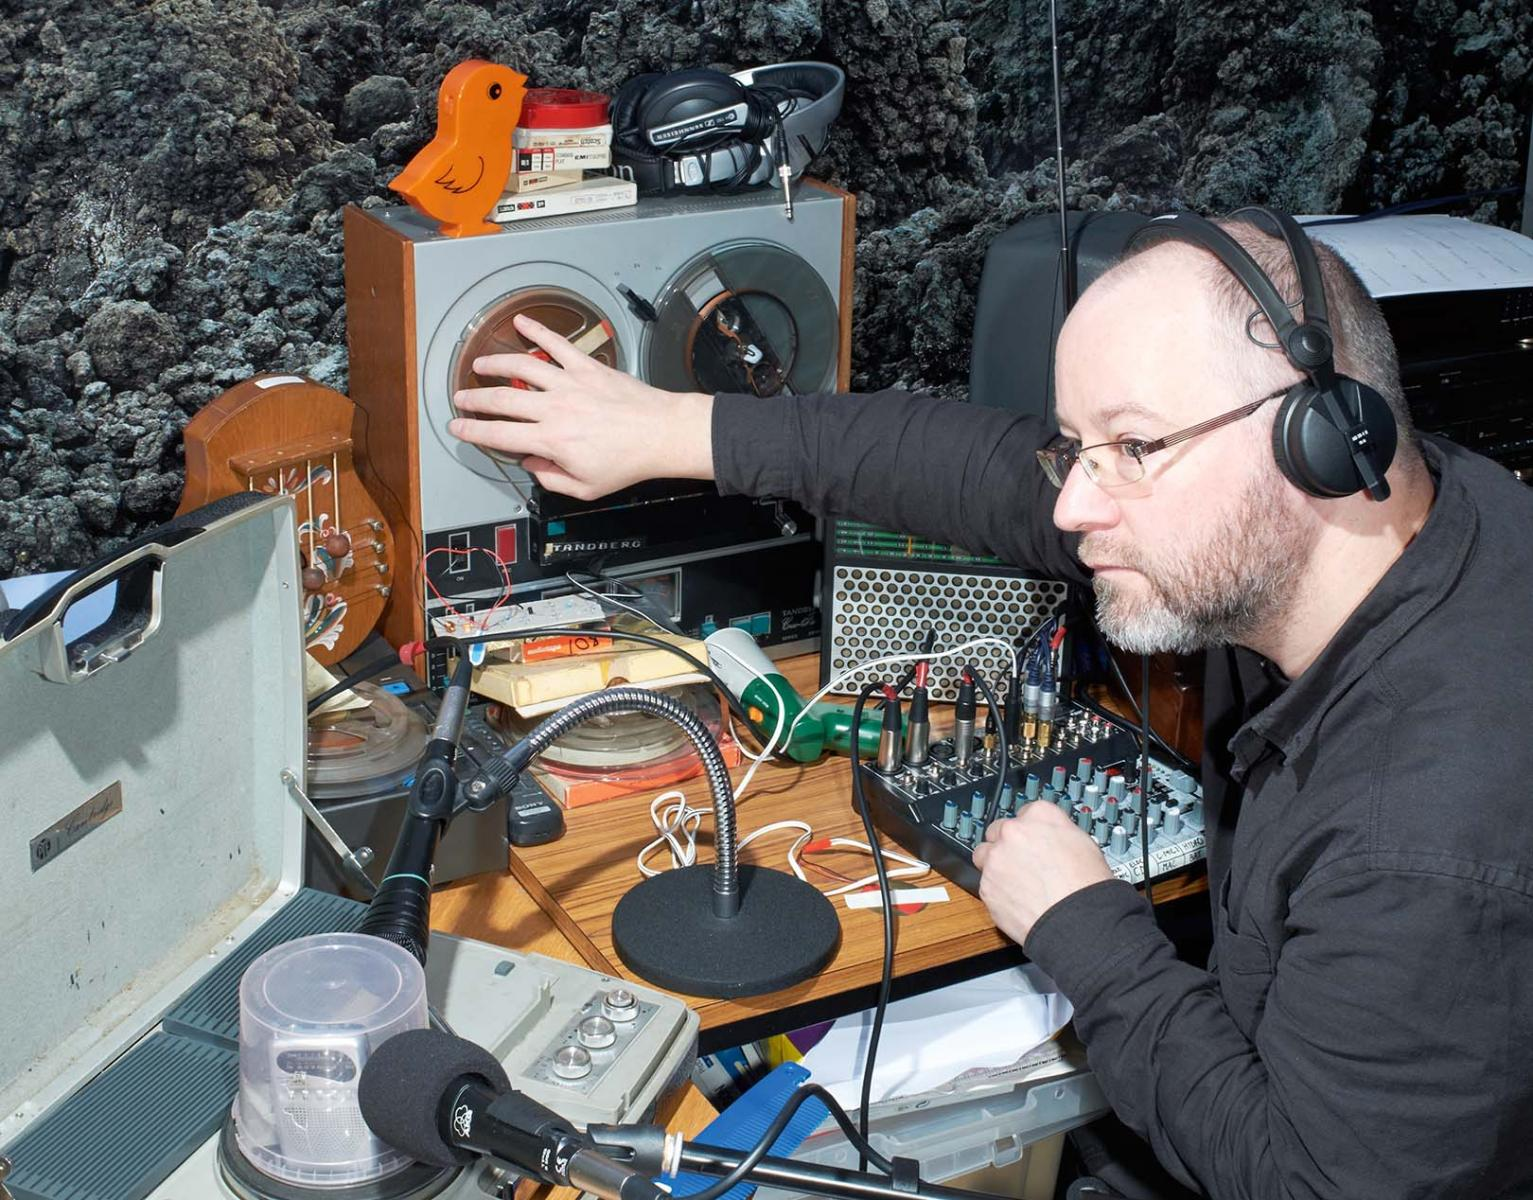 Radiophrenia Are Back With An Open Call For Sound And Radio Works Model Railroad Electronic Circuit Lists Mark Rollins The Wire